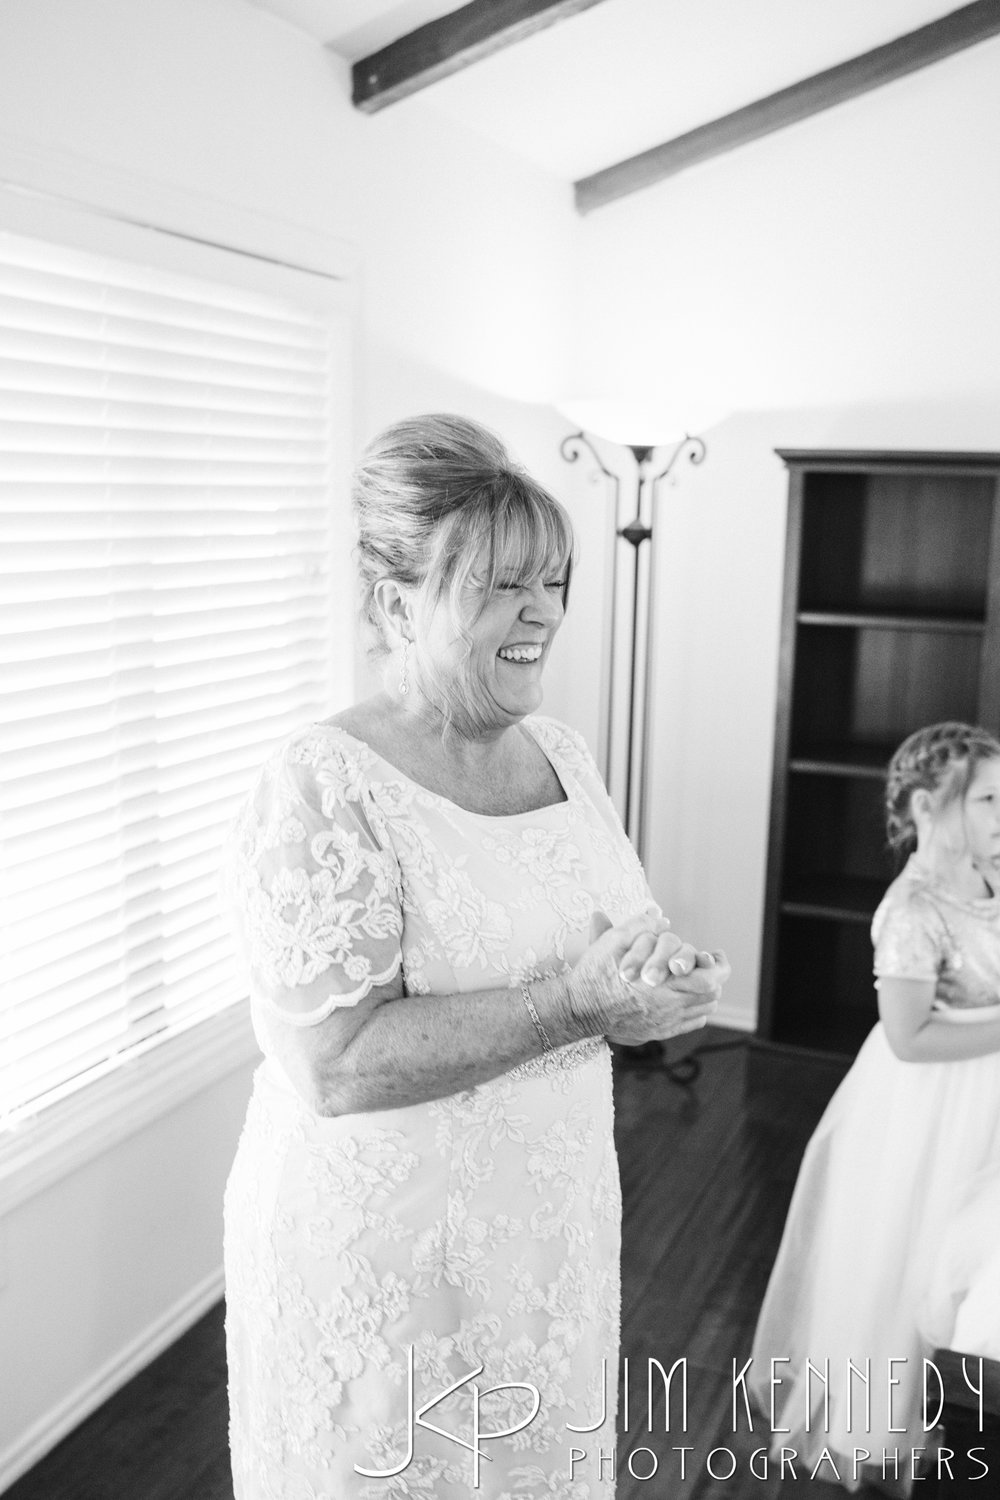 jim_kennedy_photographers_highland_springs_wedding_caitlyn_0044.jpg